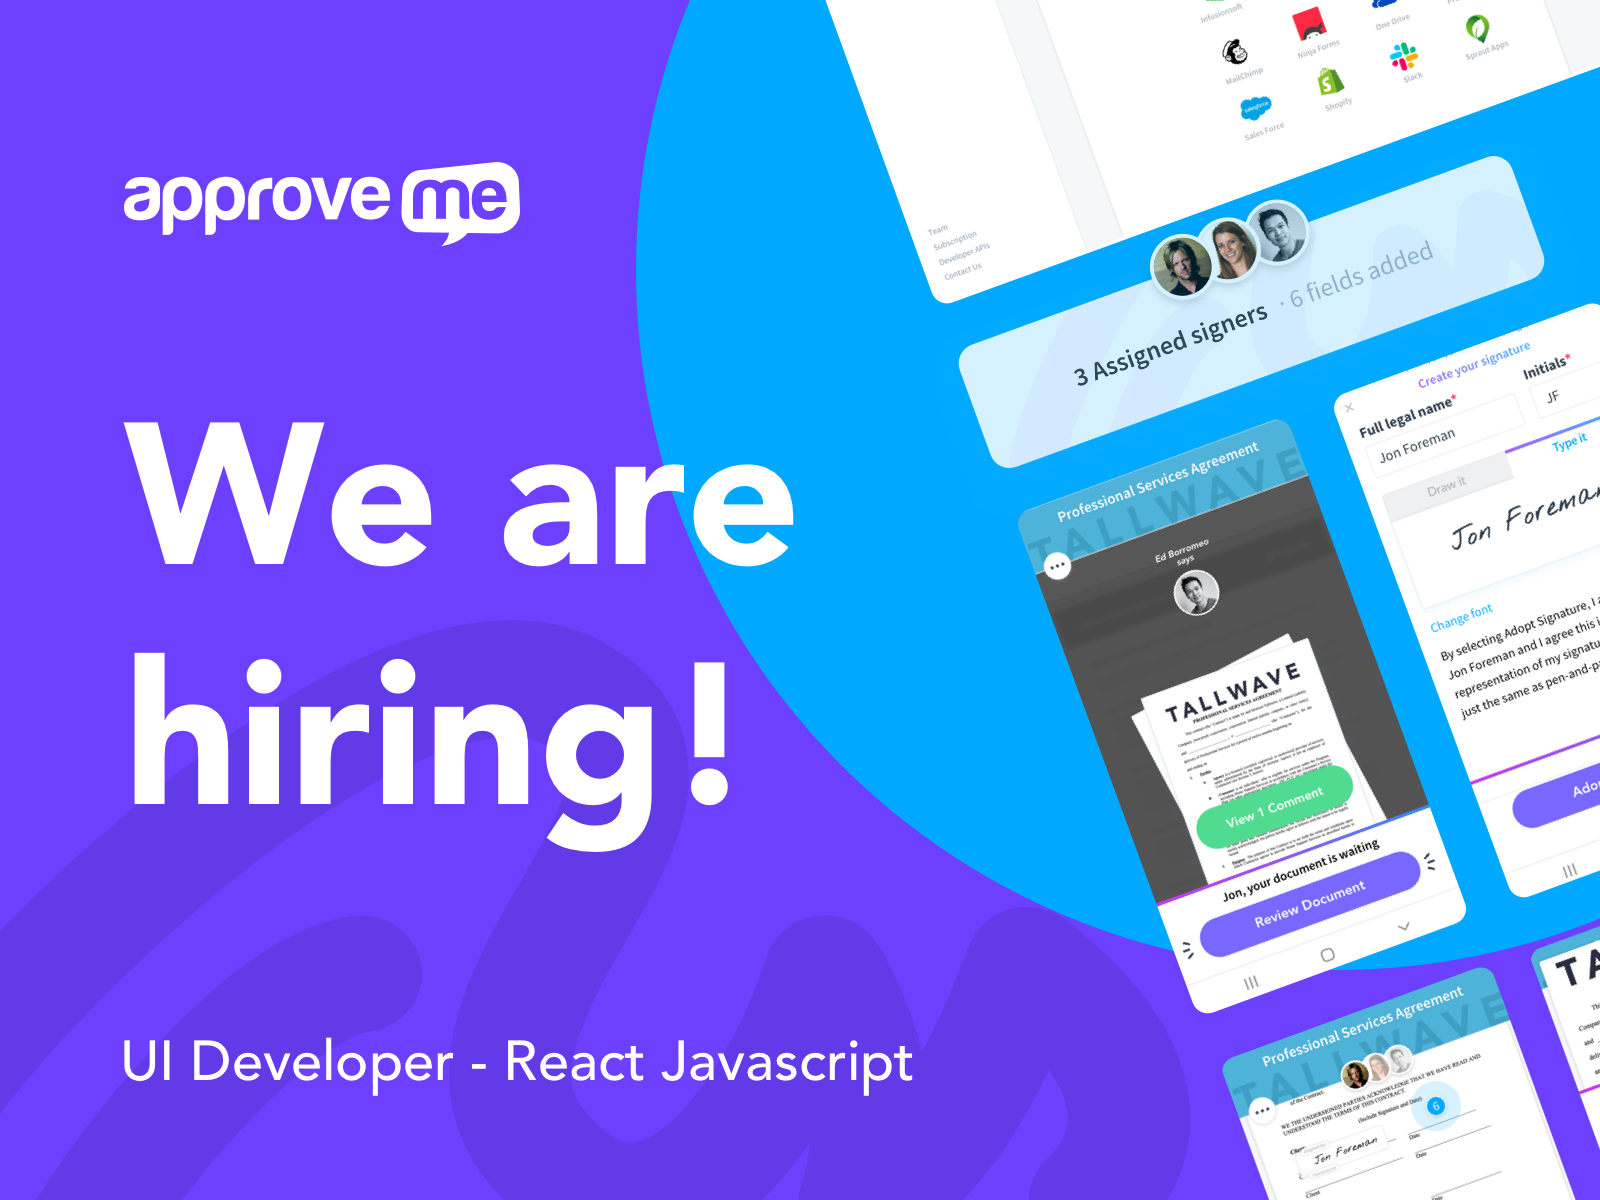 https://www.approveme.com/resources/ads/we-are-hiring.png